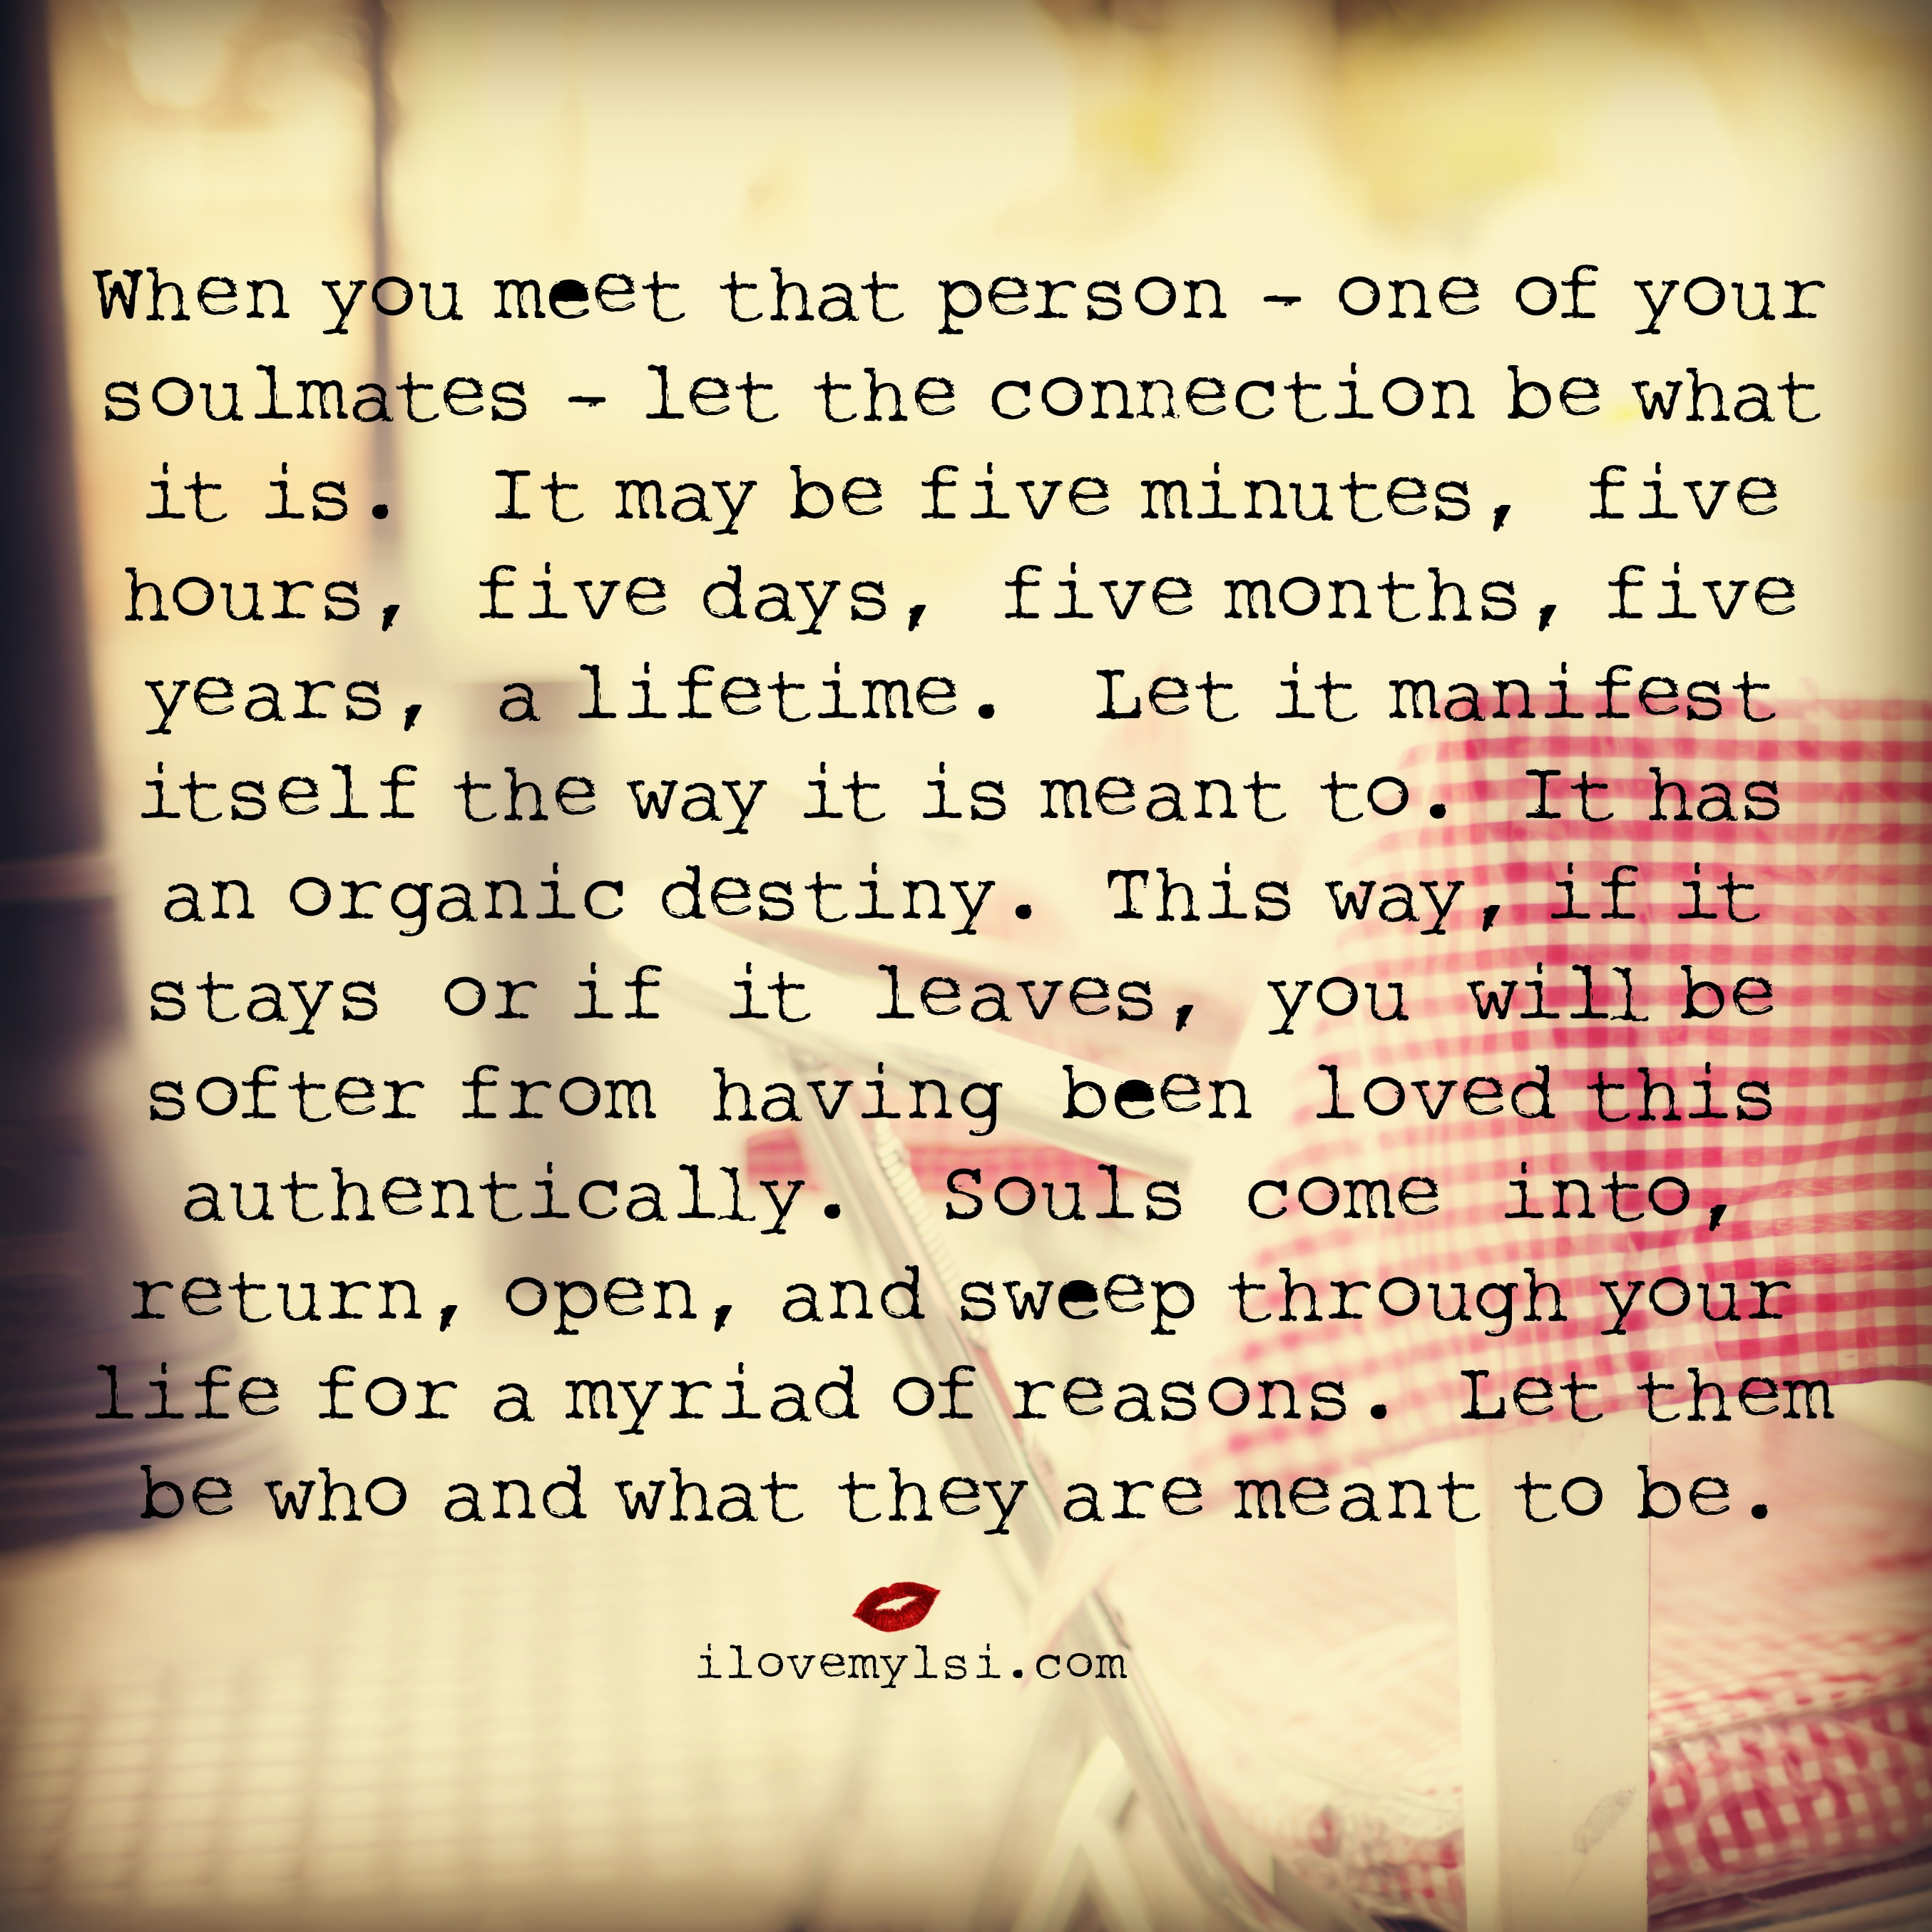 Love Each Other When Two Souls: Quotes About Meeting Your Soul Mate. QuotesGram